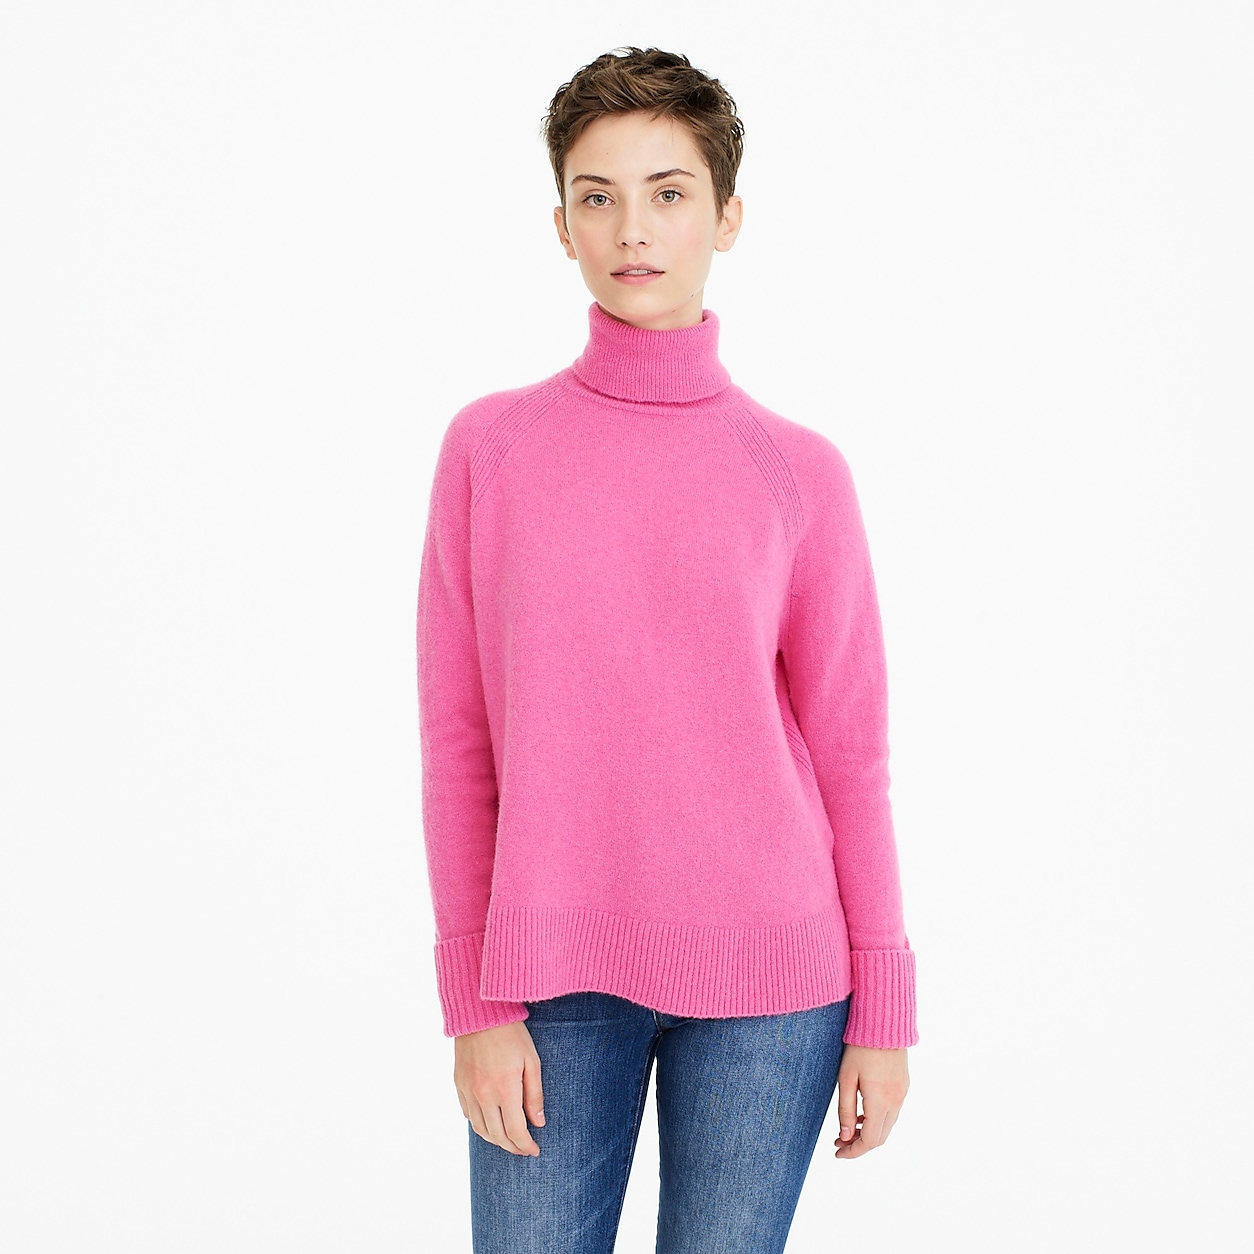 3d6cbc1a19ddb4 Turtleneck Sweater With Side Slits In Supersoft Yarn